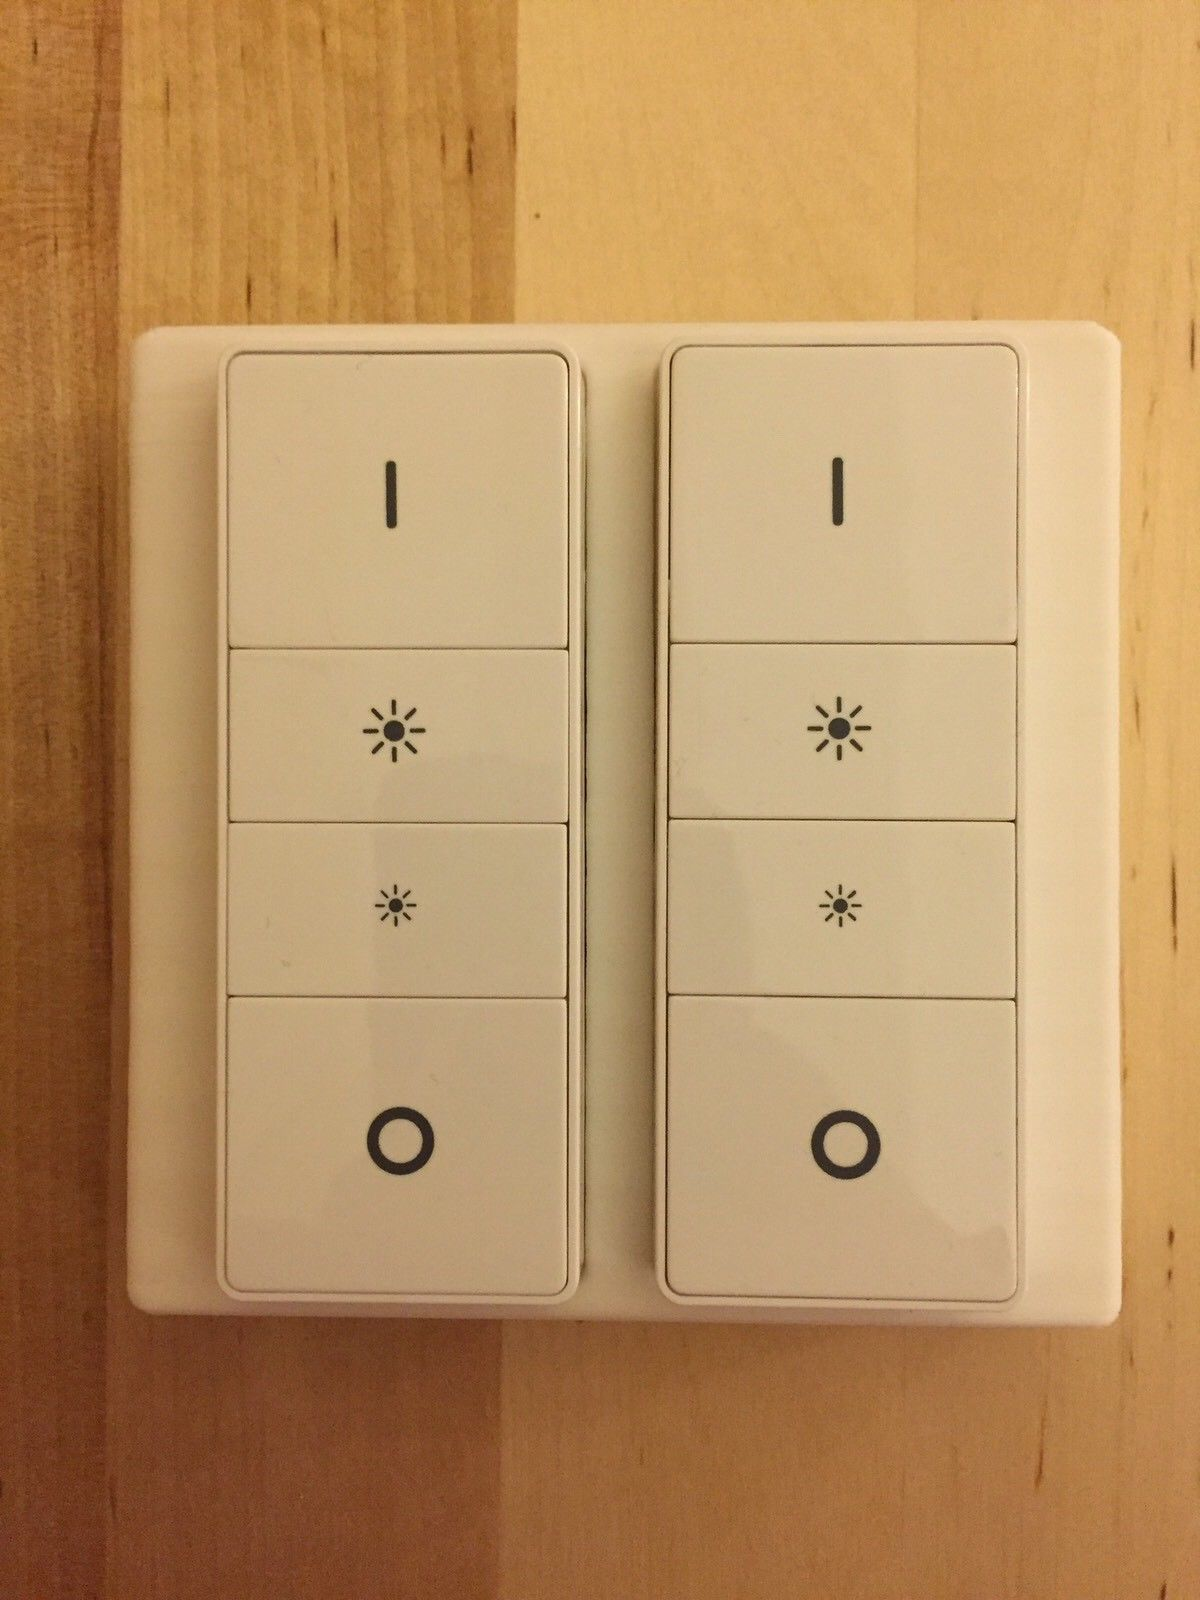 Dimmer Switch Details About Twin Slim Light Switch Cover Plate White For